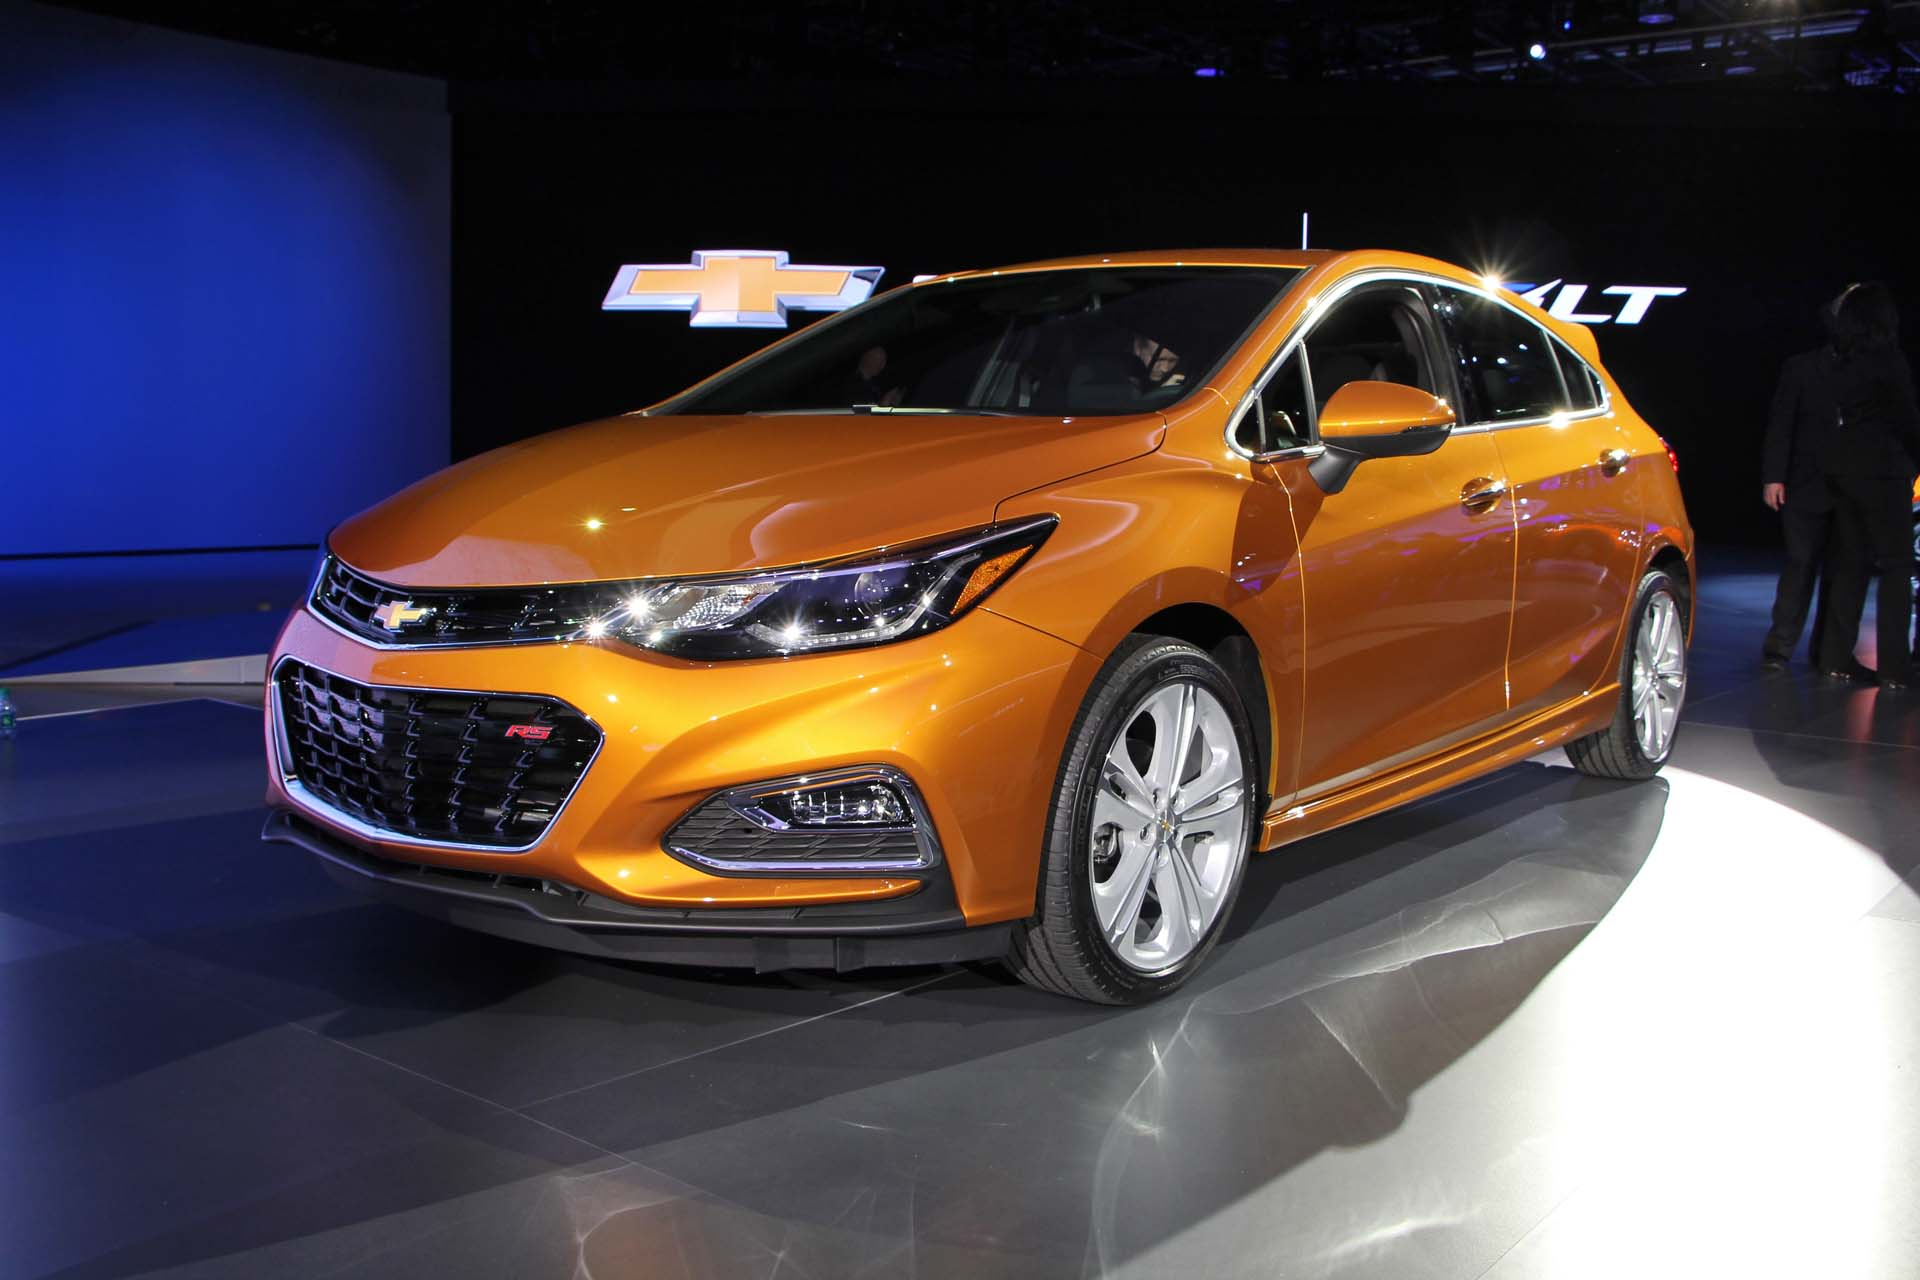 Chevrolet Cruze 2 Hatchback Desktop wallpaper